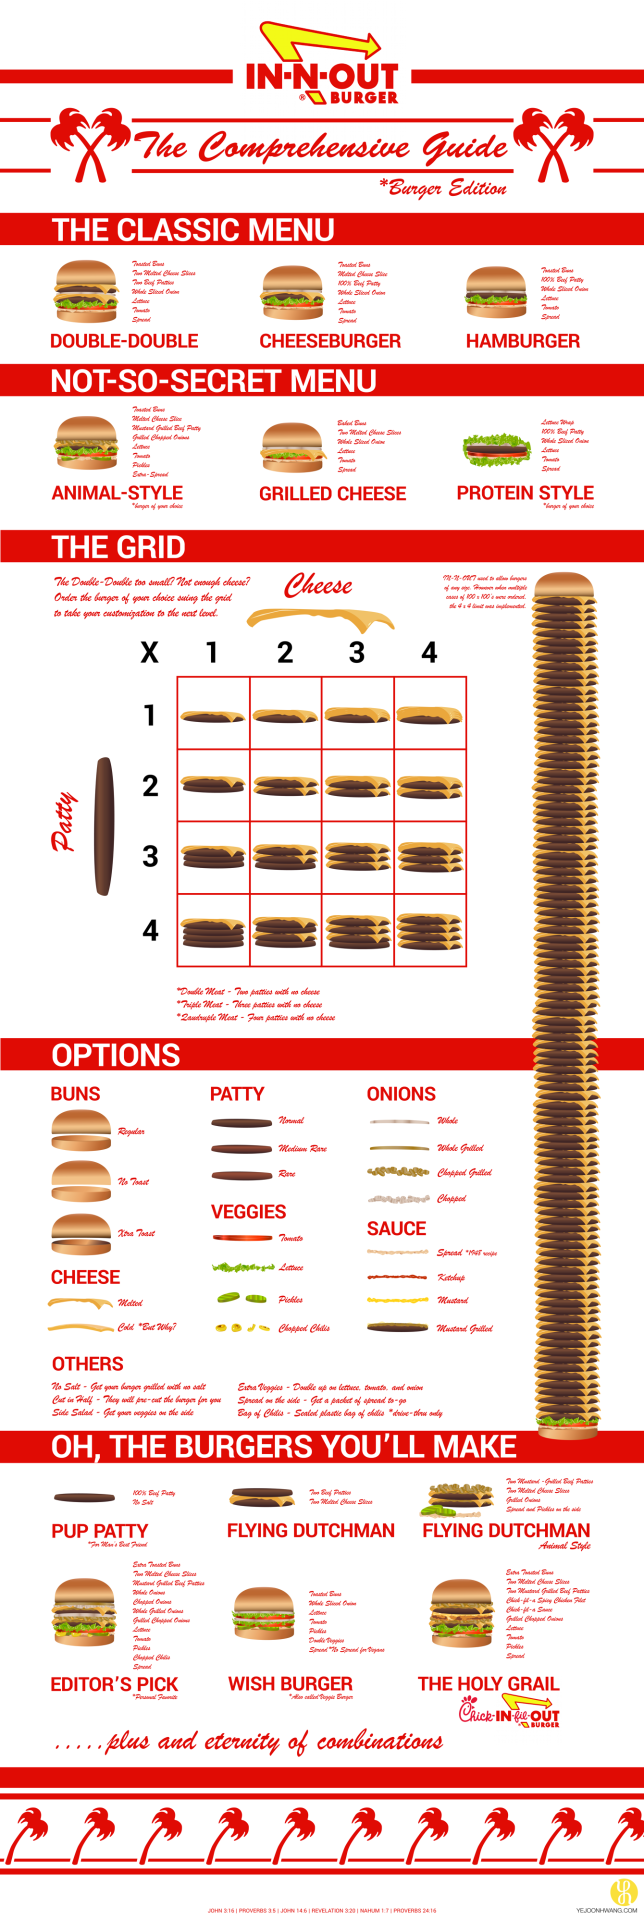 INNOUT Comprehensive Infographic Burger packaging